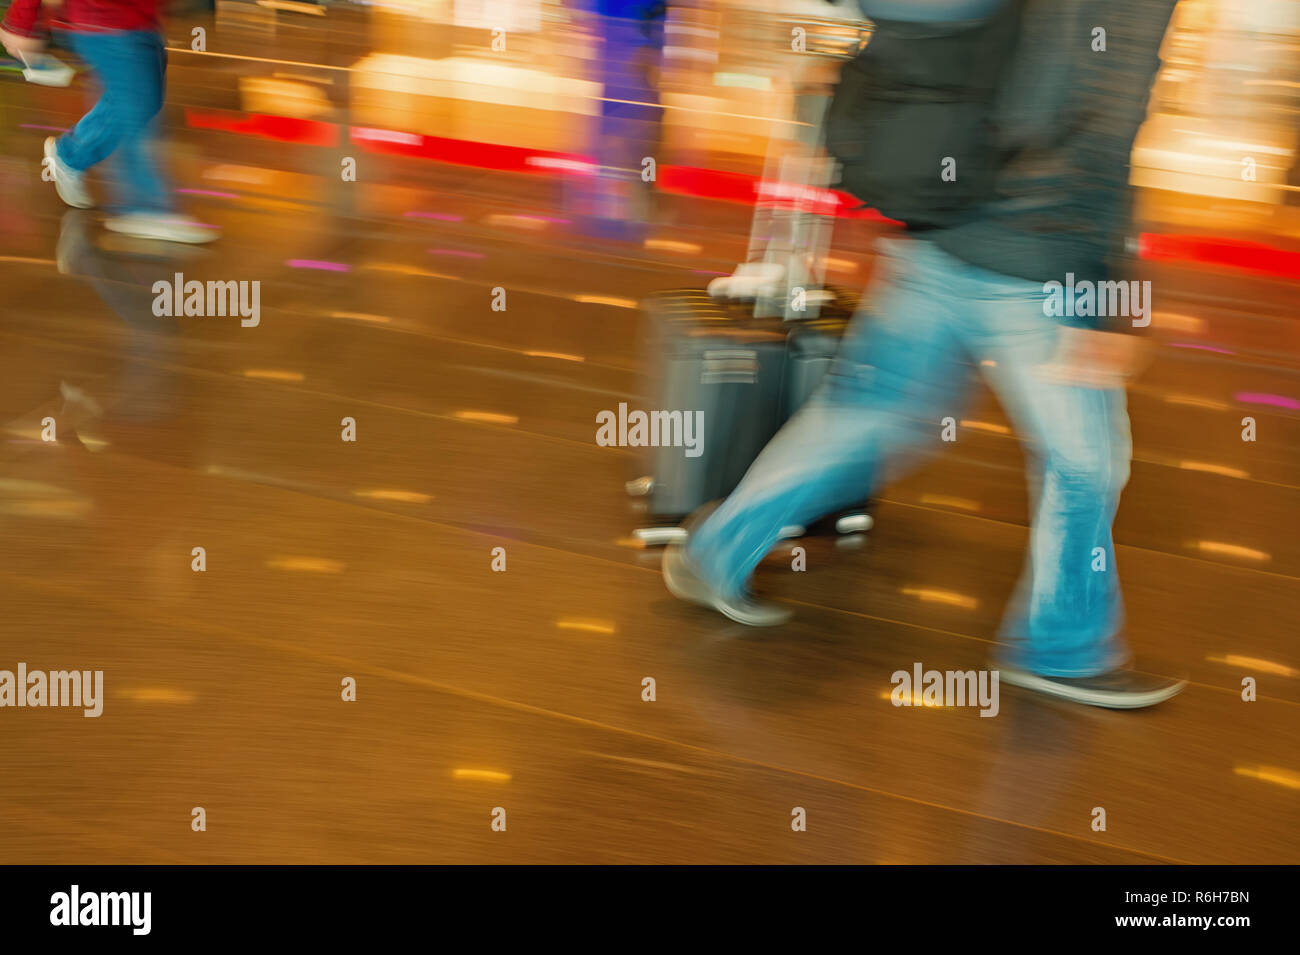 hurry people tourists with travel suitcase or bag luggage in airport or station as blurred or defocused background in speed motion - Stock Image